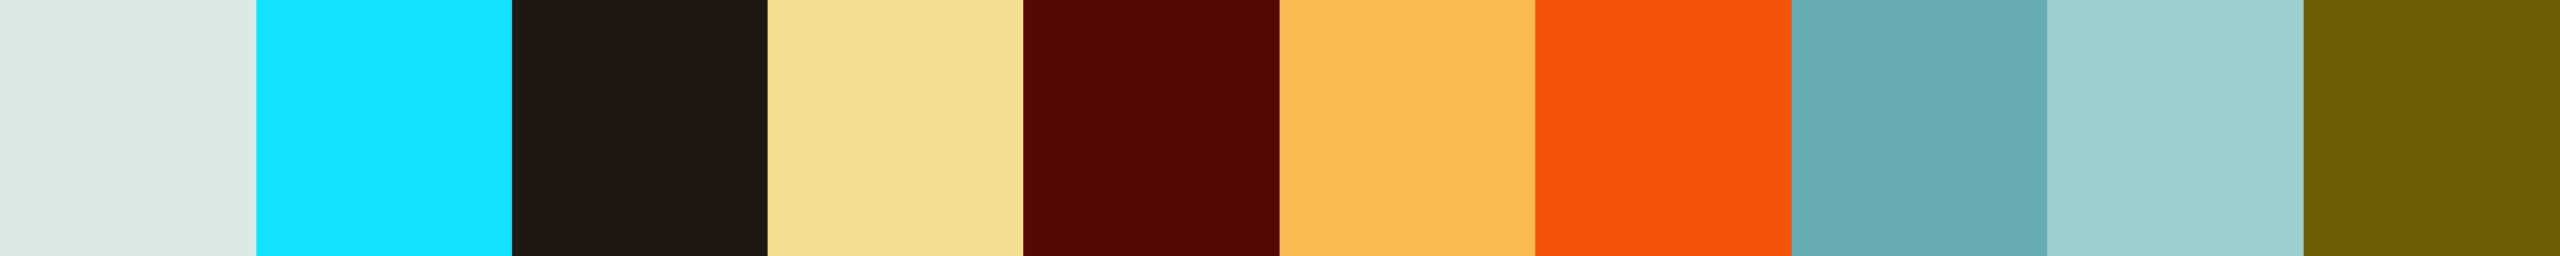 308 Louknavia Color Palette